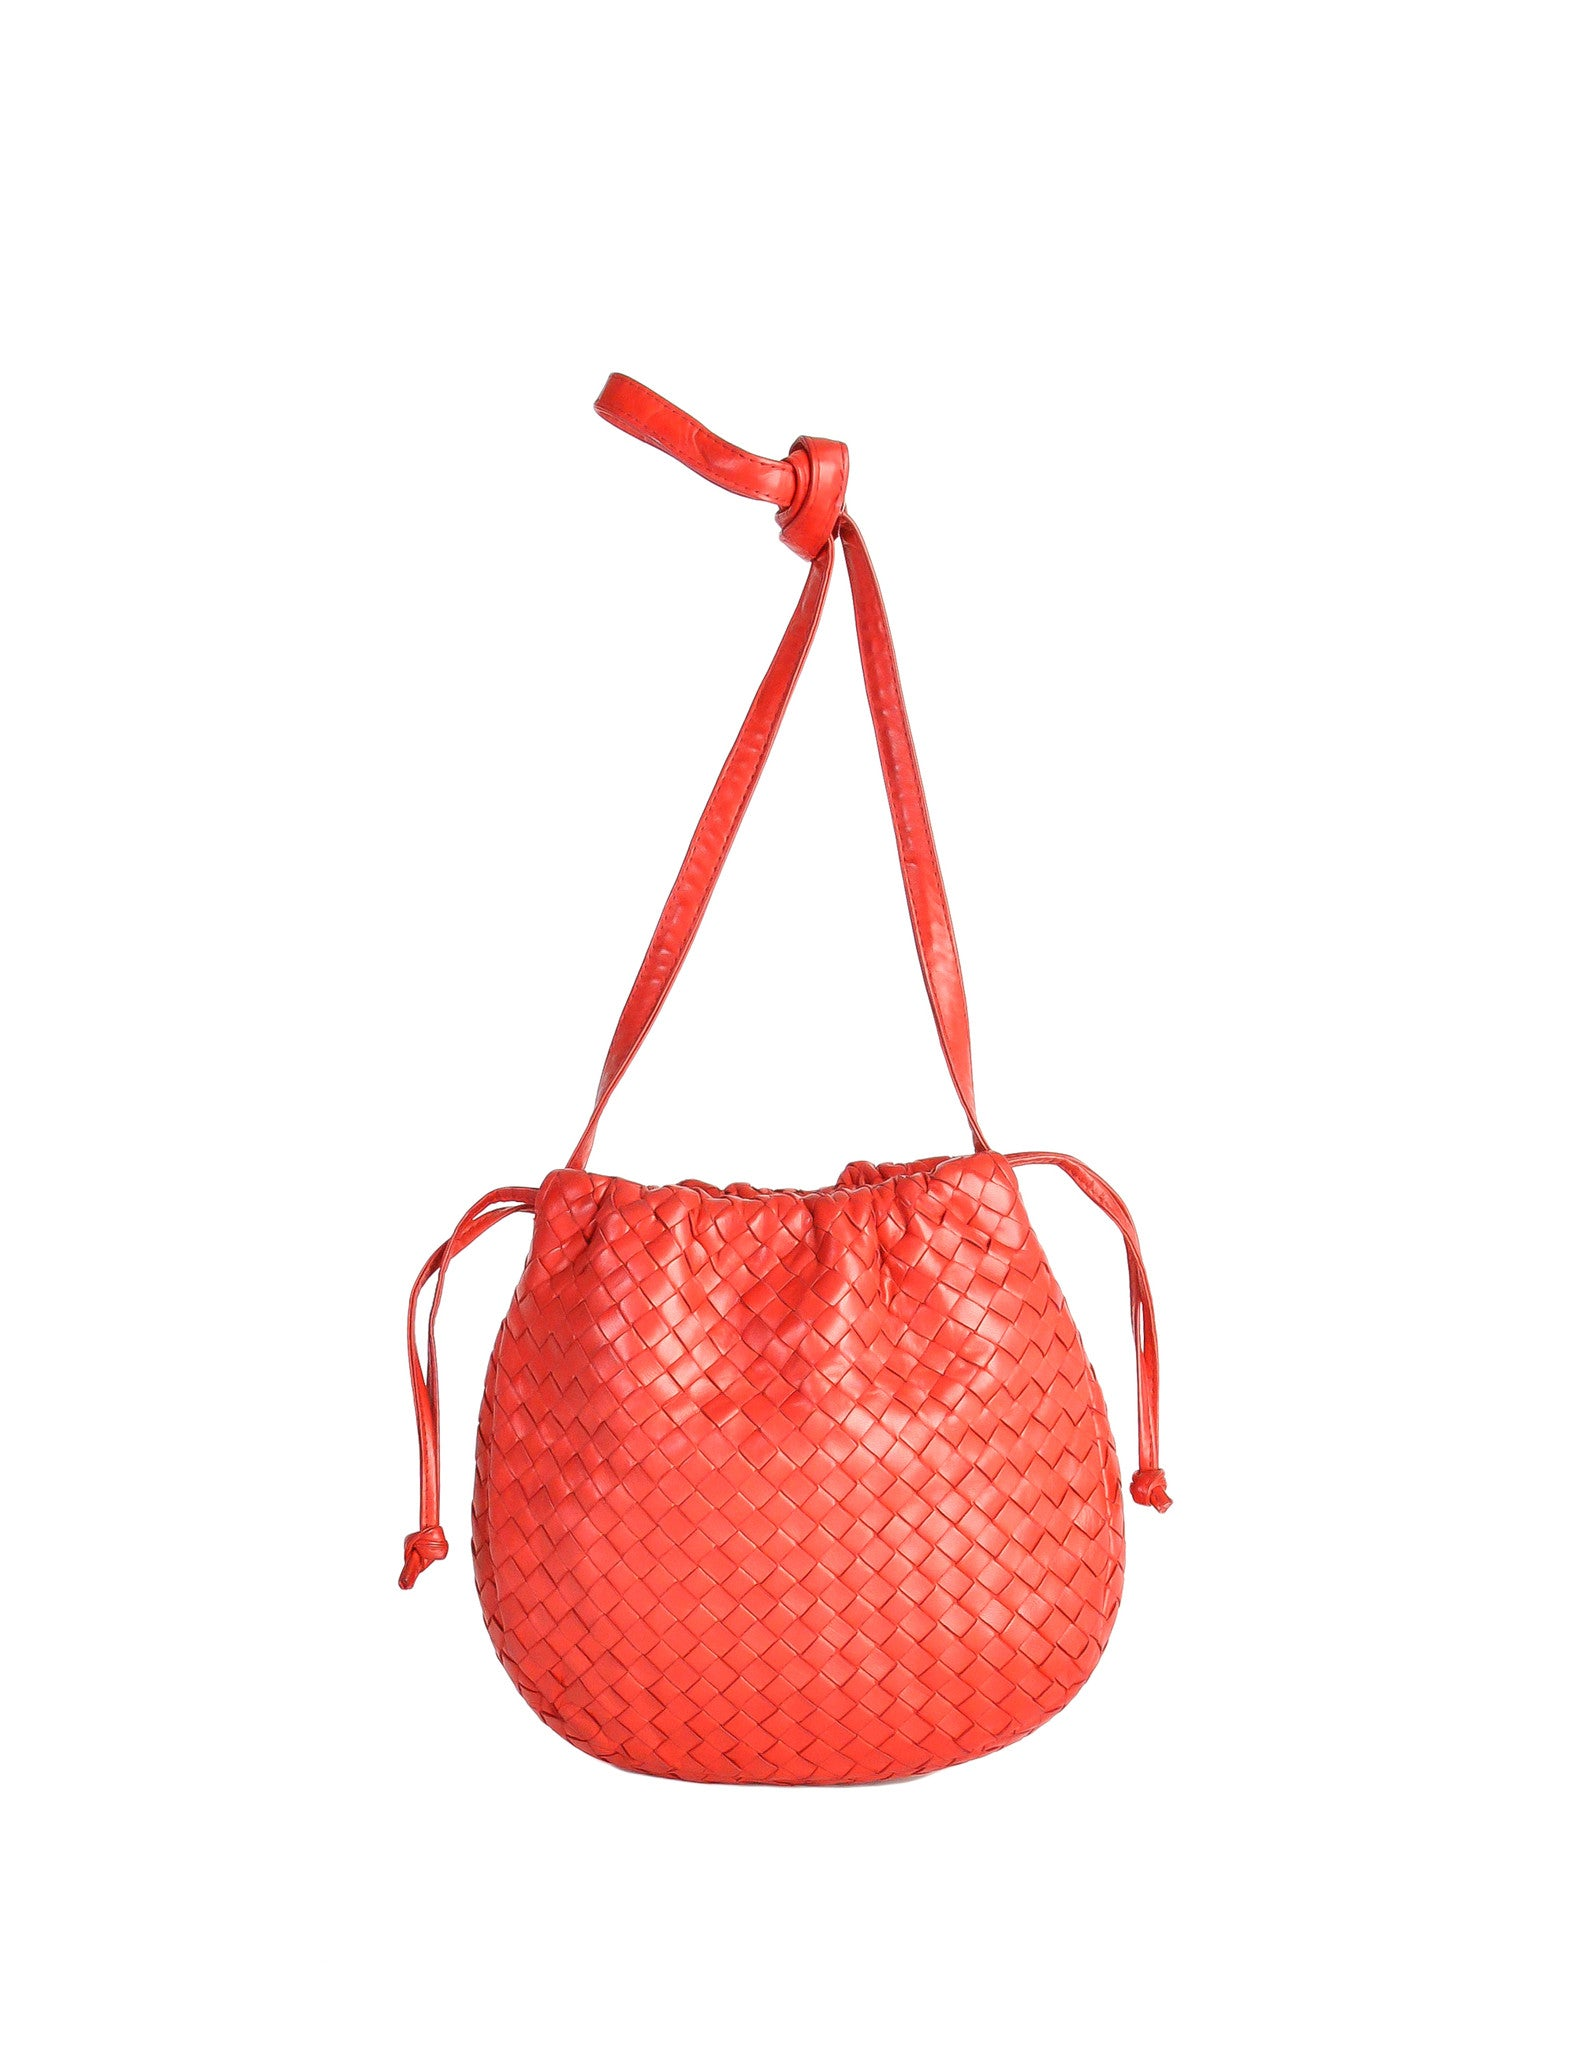 Bottega Veneta Vintage Intrecciato Red Woven Leather Drawstring Bag - Amarcord Vintage Fashion  - 1